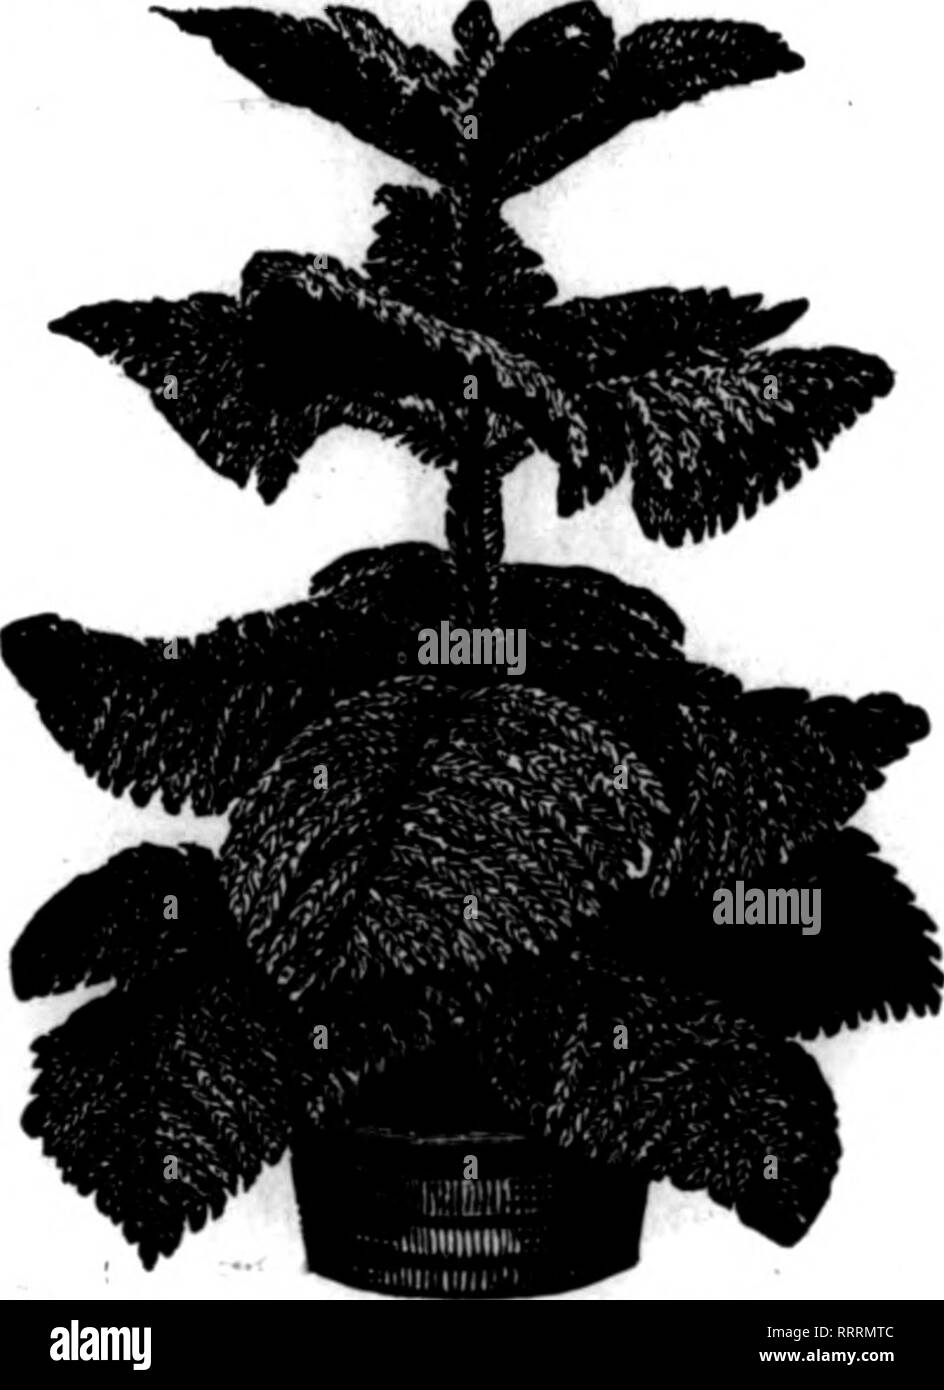 """. Florists' review [microform]. Floriculture. TABLE FERNS We offer ? large stock of extra fine t«1>Ic fans. There will be a Dig demand for theM durliyr tli« first ruth of fall business. fS.OO per 100, flB.tt per 1000. 600 at 1000 rate. l^SS'^'' PALMS Kentia Belmoreana ^Height No. Leaves 12 to 15 in. 28 to 80 In. 6-7 34 to 86 In. « ' 36 to 46 in. M to 60 In Eacb 10.85 i 1.60 3.60 to 4.00 7.00 %^^PD. tubs. 6^-6% 8-9 $1.00 1.50 2.60 3.60 5.00 6.00 '10.00 12.00 plants, f»4« Ui, rscens ?"""">*bel,.; Veit,,: UtlUs , Utlli:. Kentia Belmoreana in Tubs Height No. of Plants Each - to 24 in. 3 to - Stock Image"""